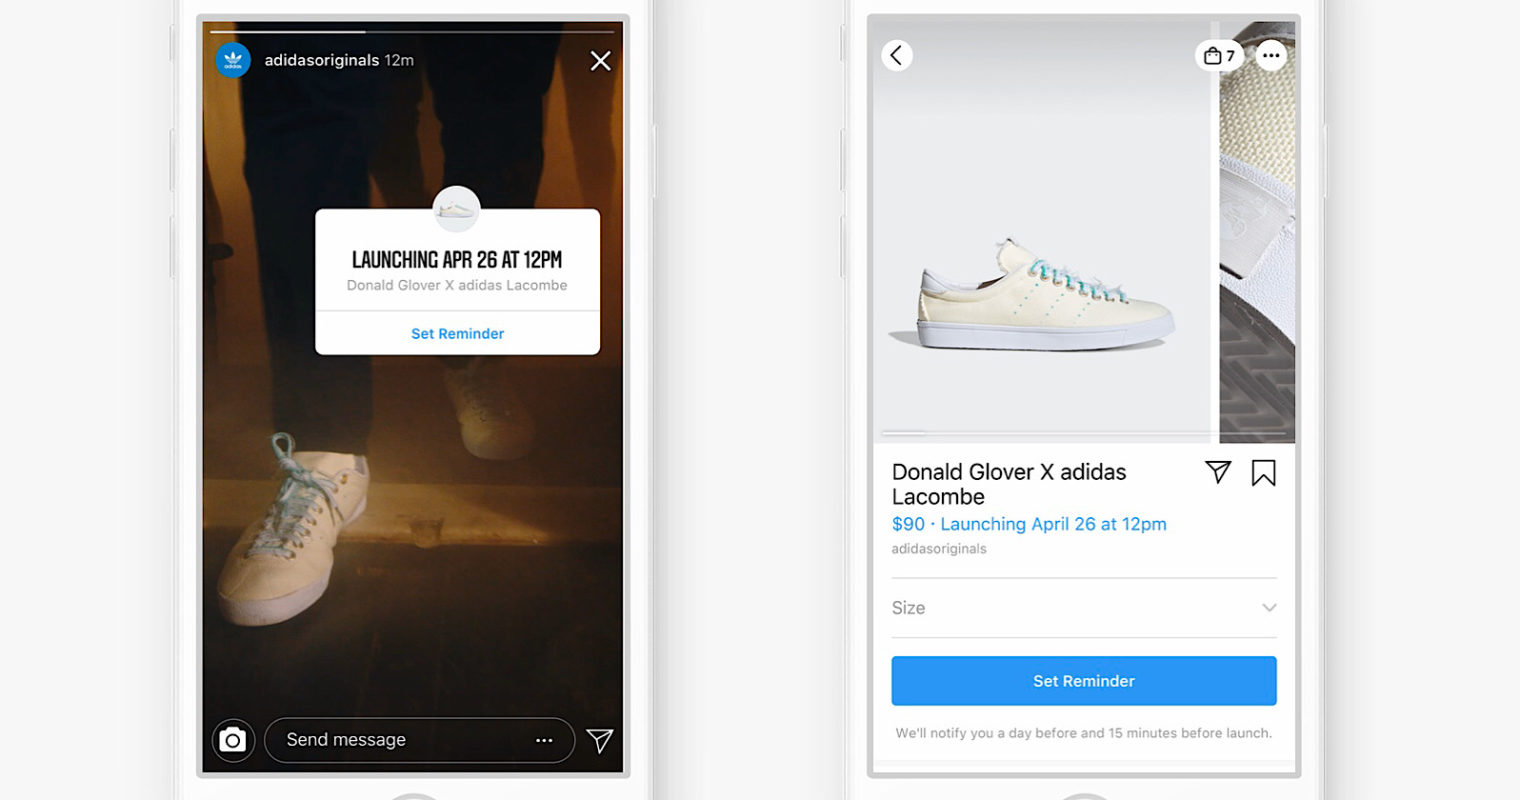 Instagram to Help Businesses Sell Products By Reminding Customers on Launch Day